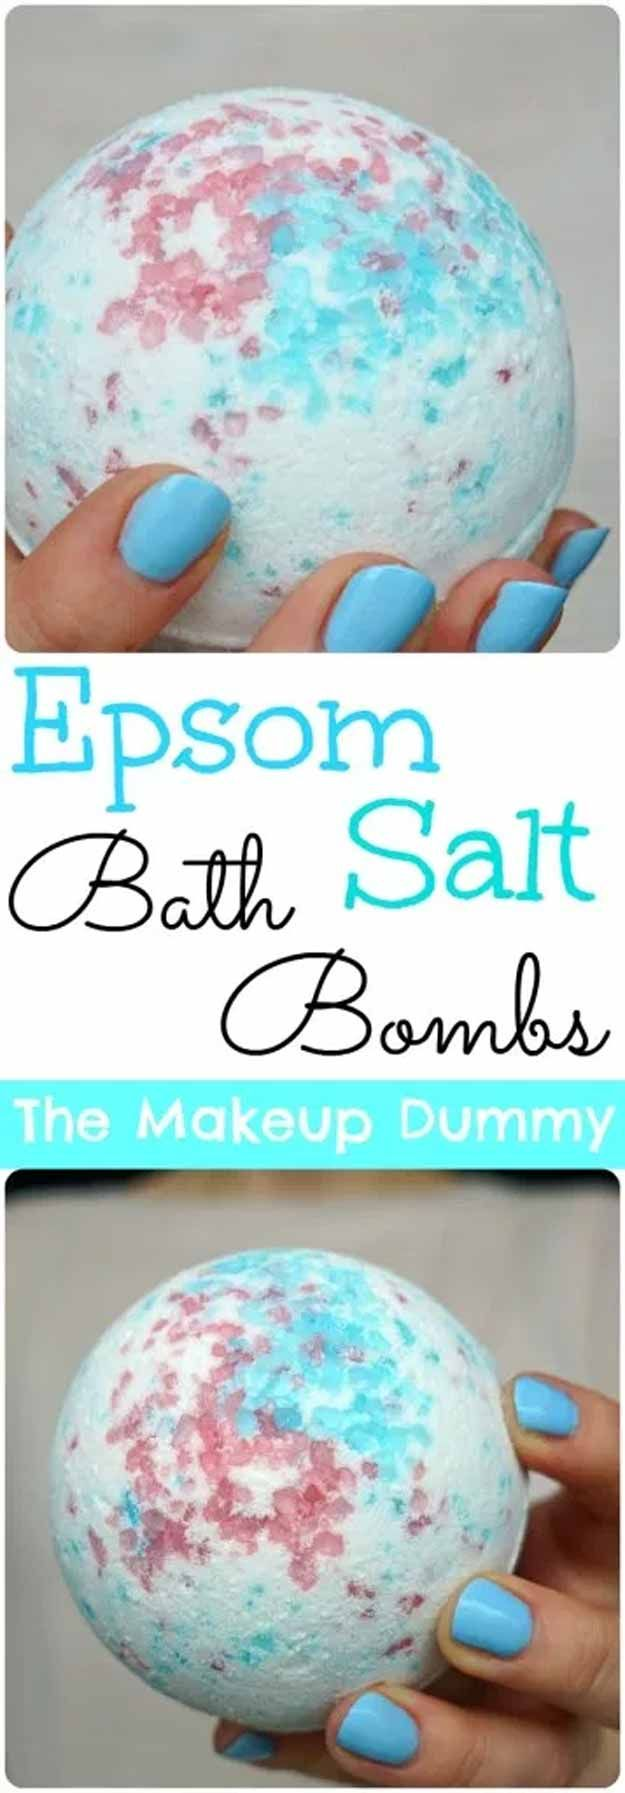 Best DIY Bath Bombs For Spa Day at Home - DIY Bath Bombs with Epsom Salt - Easy DIY Bath Bomb Recipes For You To Make At Home. These Are Made With Easy, Natural Recipe Ideas And Are Great For Sensitive Skin. Some Are Made Without Citric Acid And Without Epsom Salt So You Can Get That Scented And Lush Feel On Your Skin Without Irritation. Try Ones For Kids For A Fun Galaxy Bath Time. These Homemade Bath Bombs Are Relaxing And Can Be Made Organic Too. Try Them With Glitter Or Colorful…